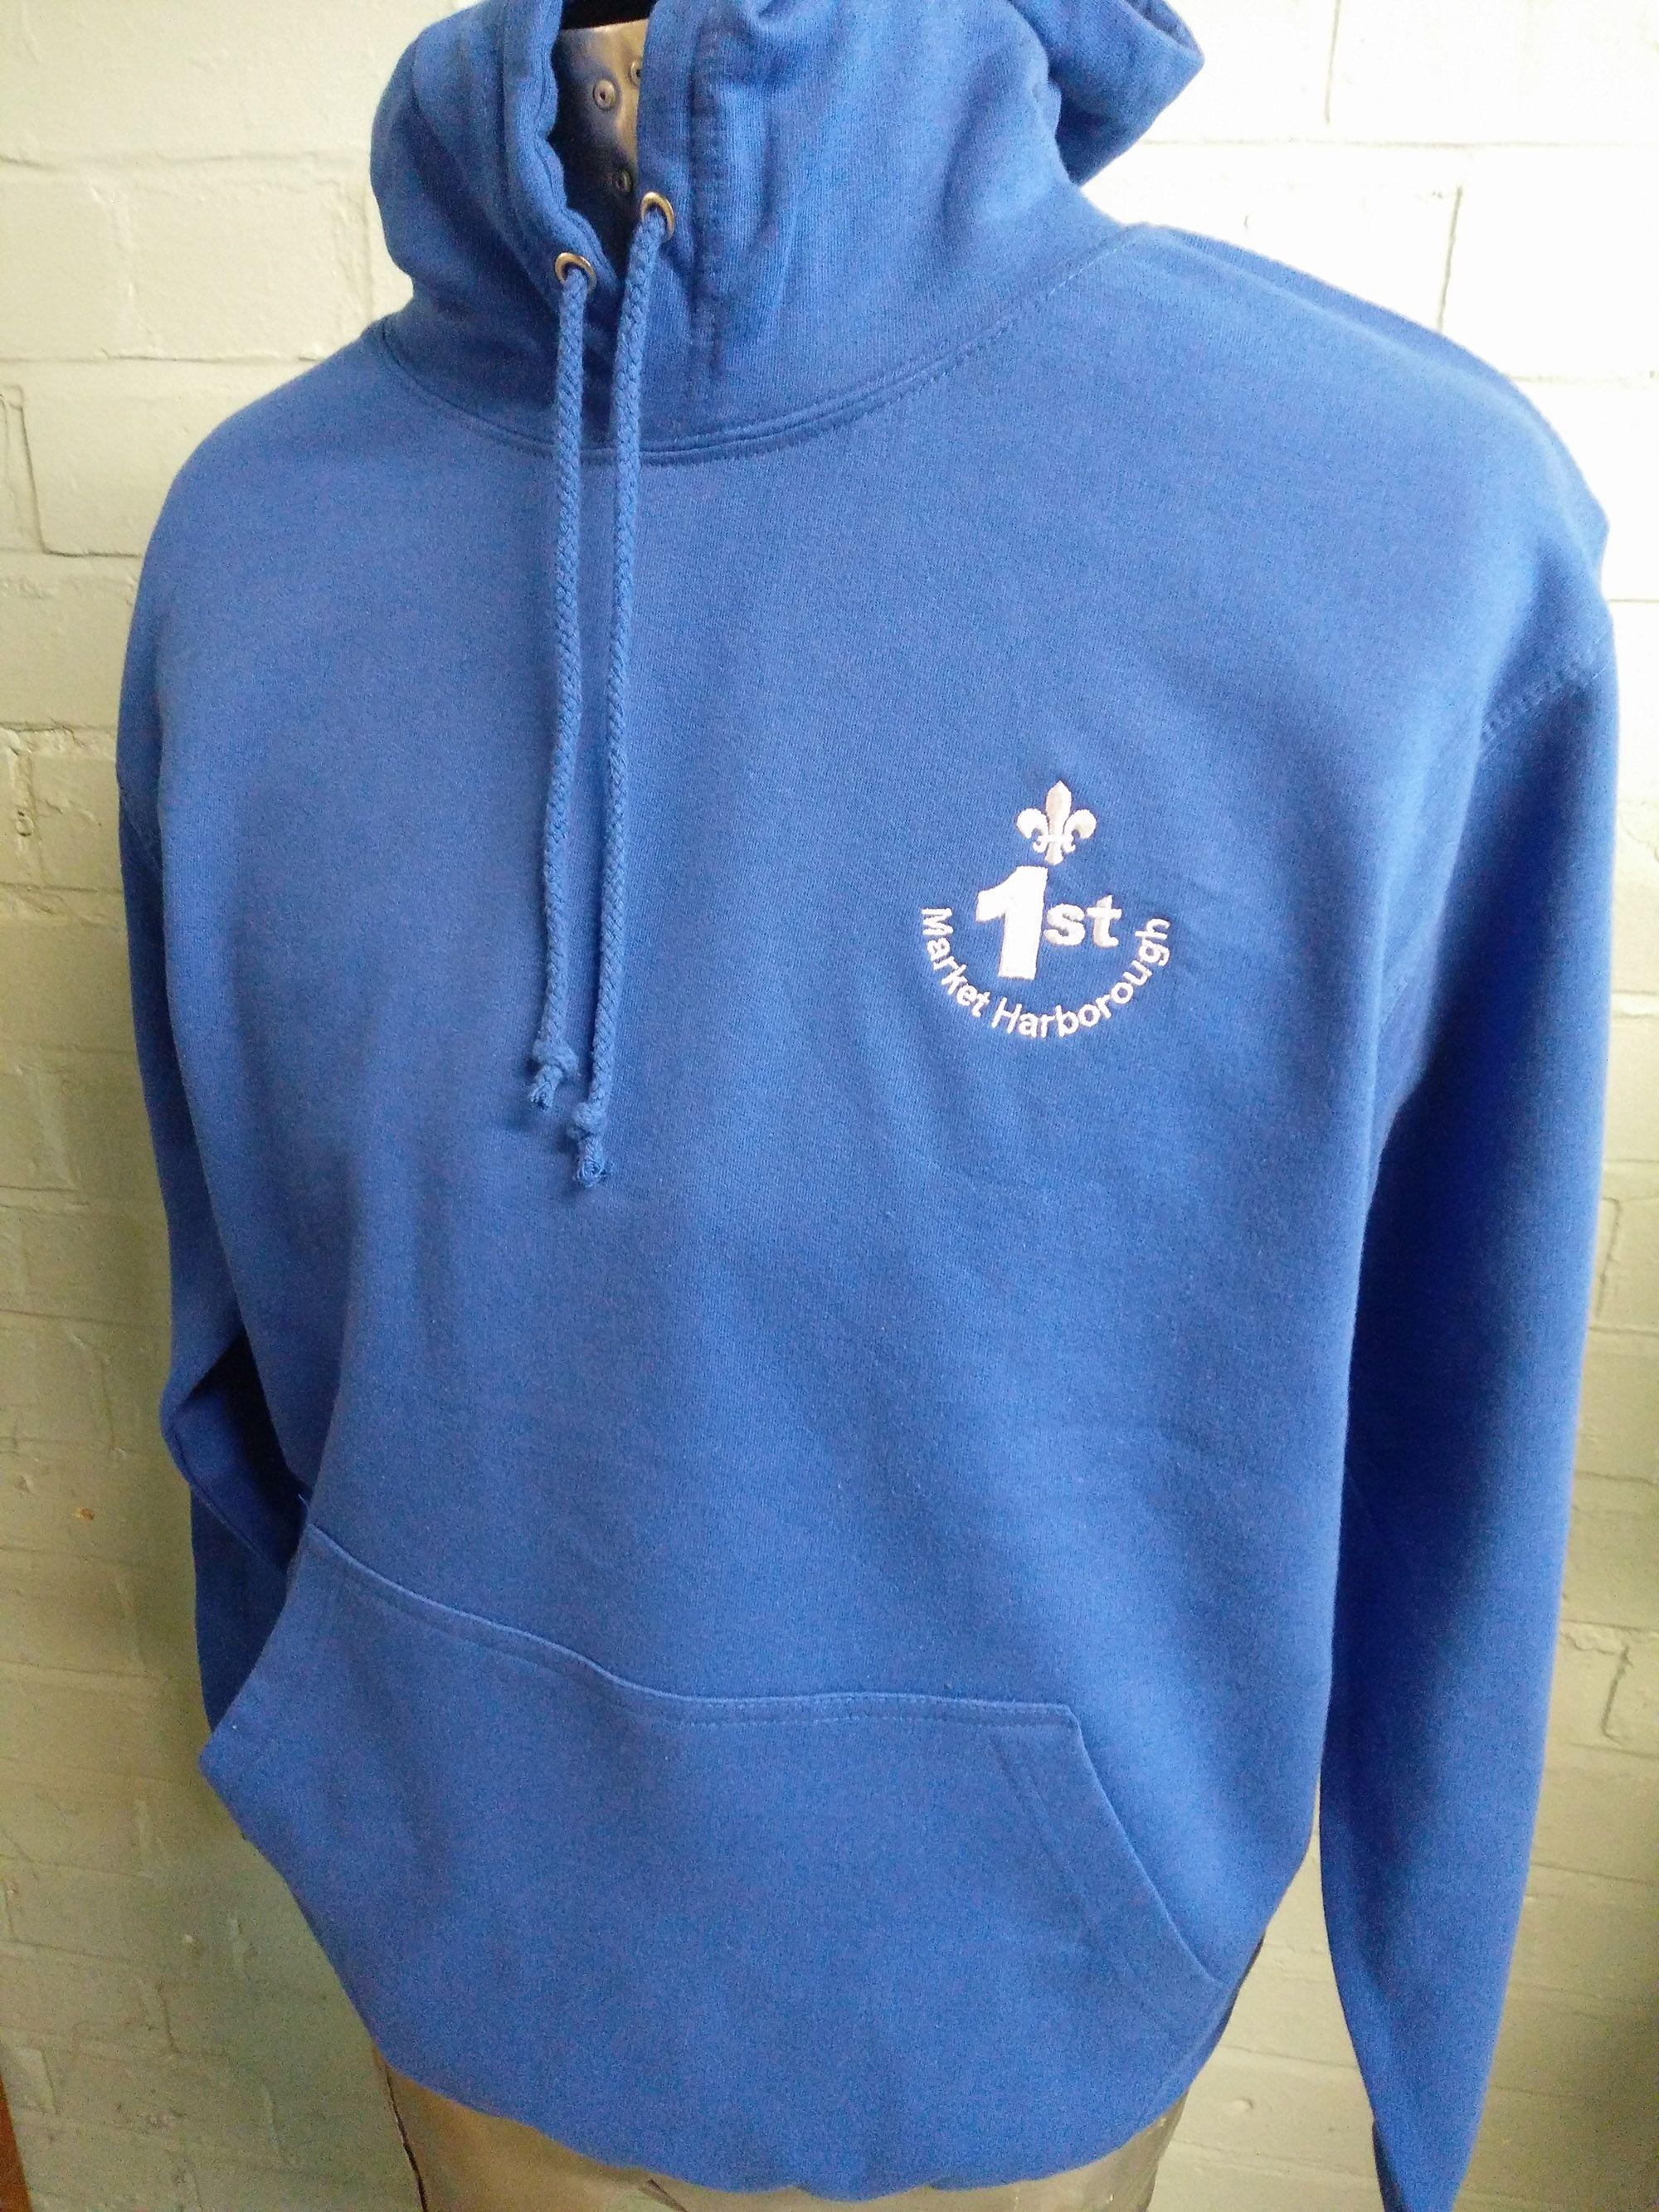 37008c8cf7a3f Blue printed and embroidered hoodies for 1st Market Harborough Scout ...